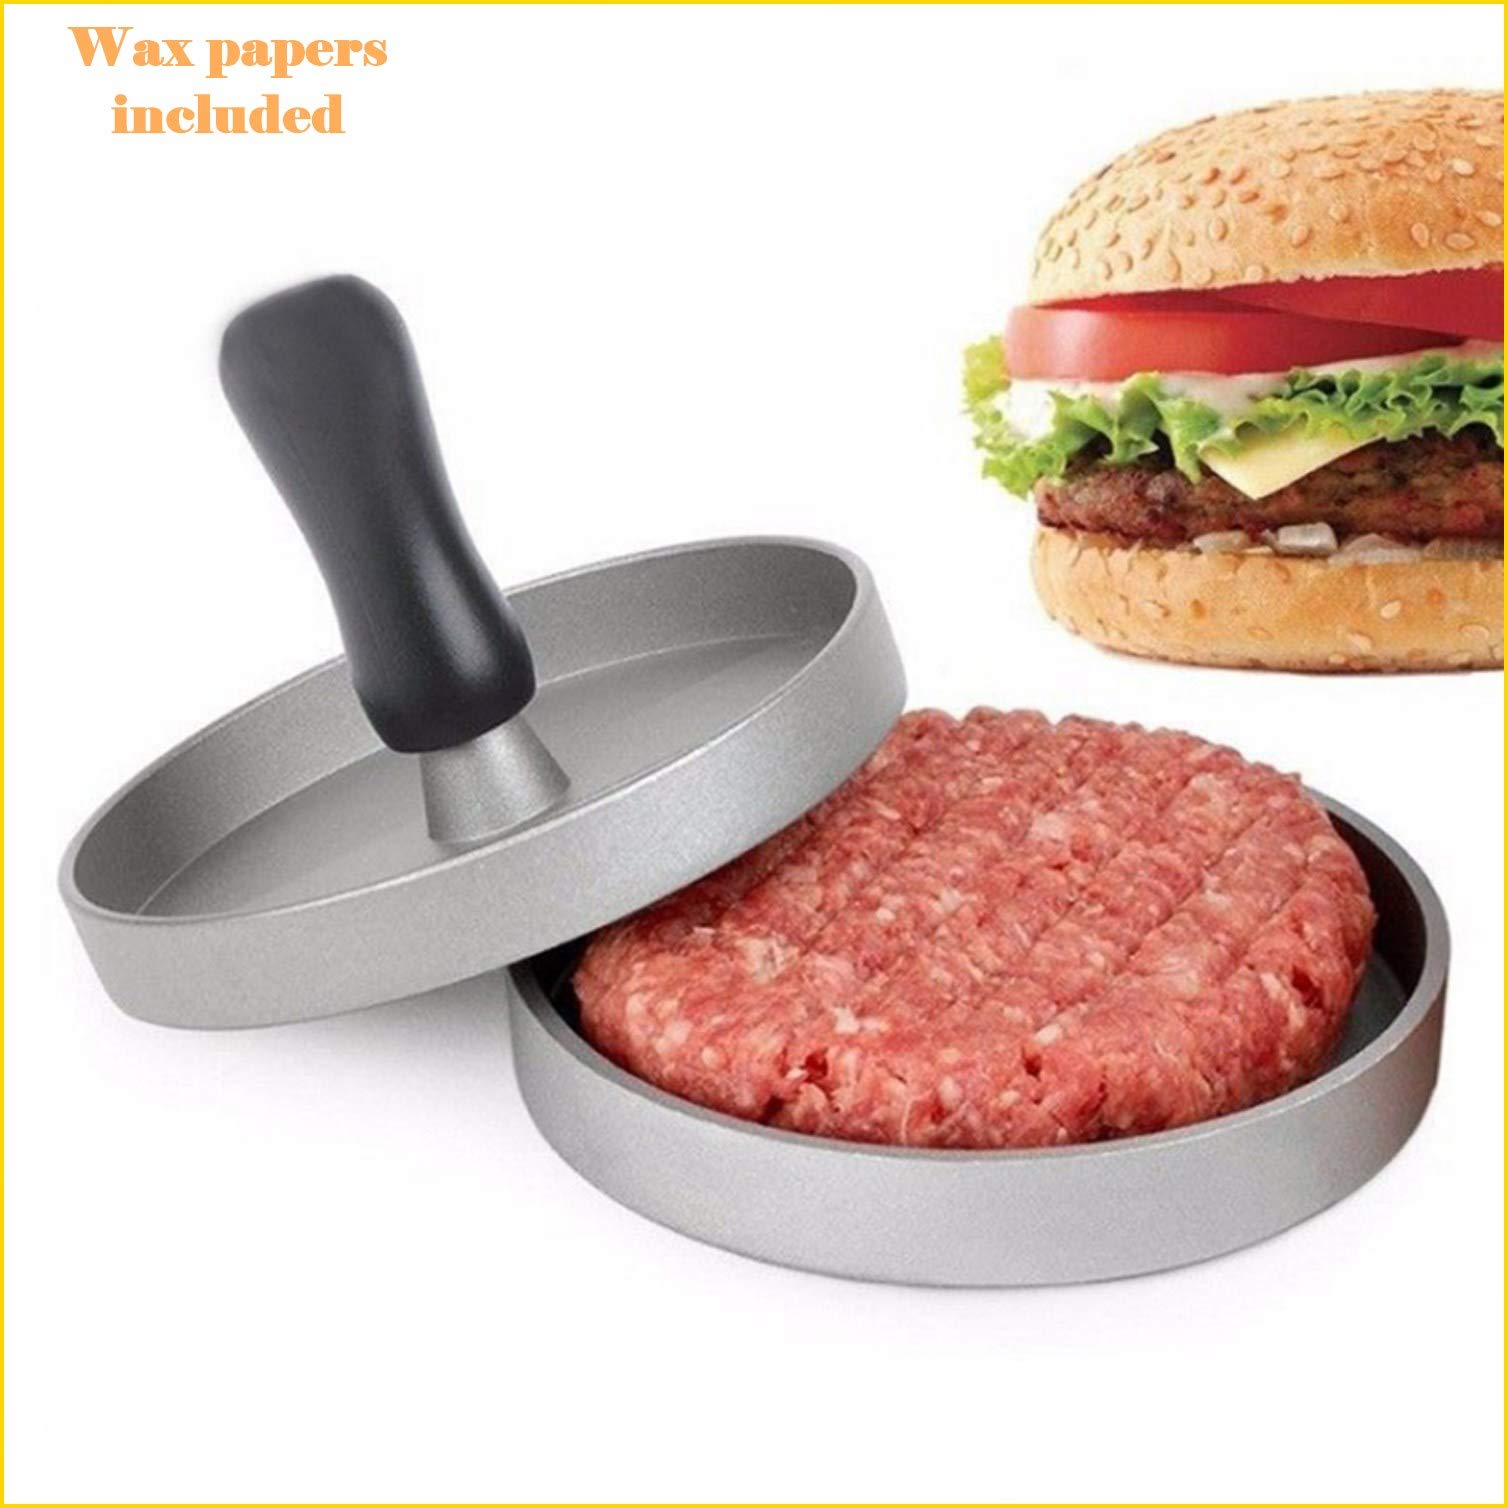 Coop & Co. Hamburger Press Patty Mold with Wax Paper for BBQ Grill Made from Food Grade Aluminium Die-Cast by Coop & Co.